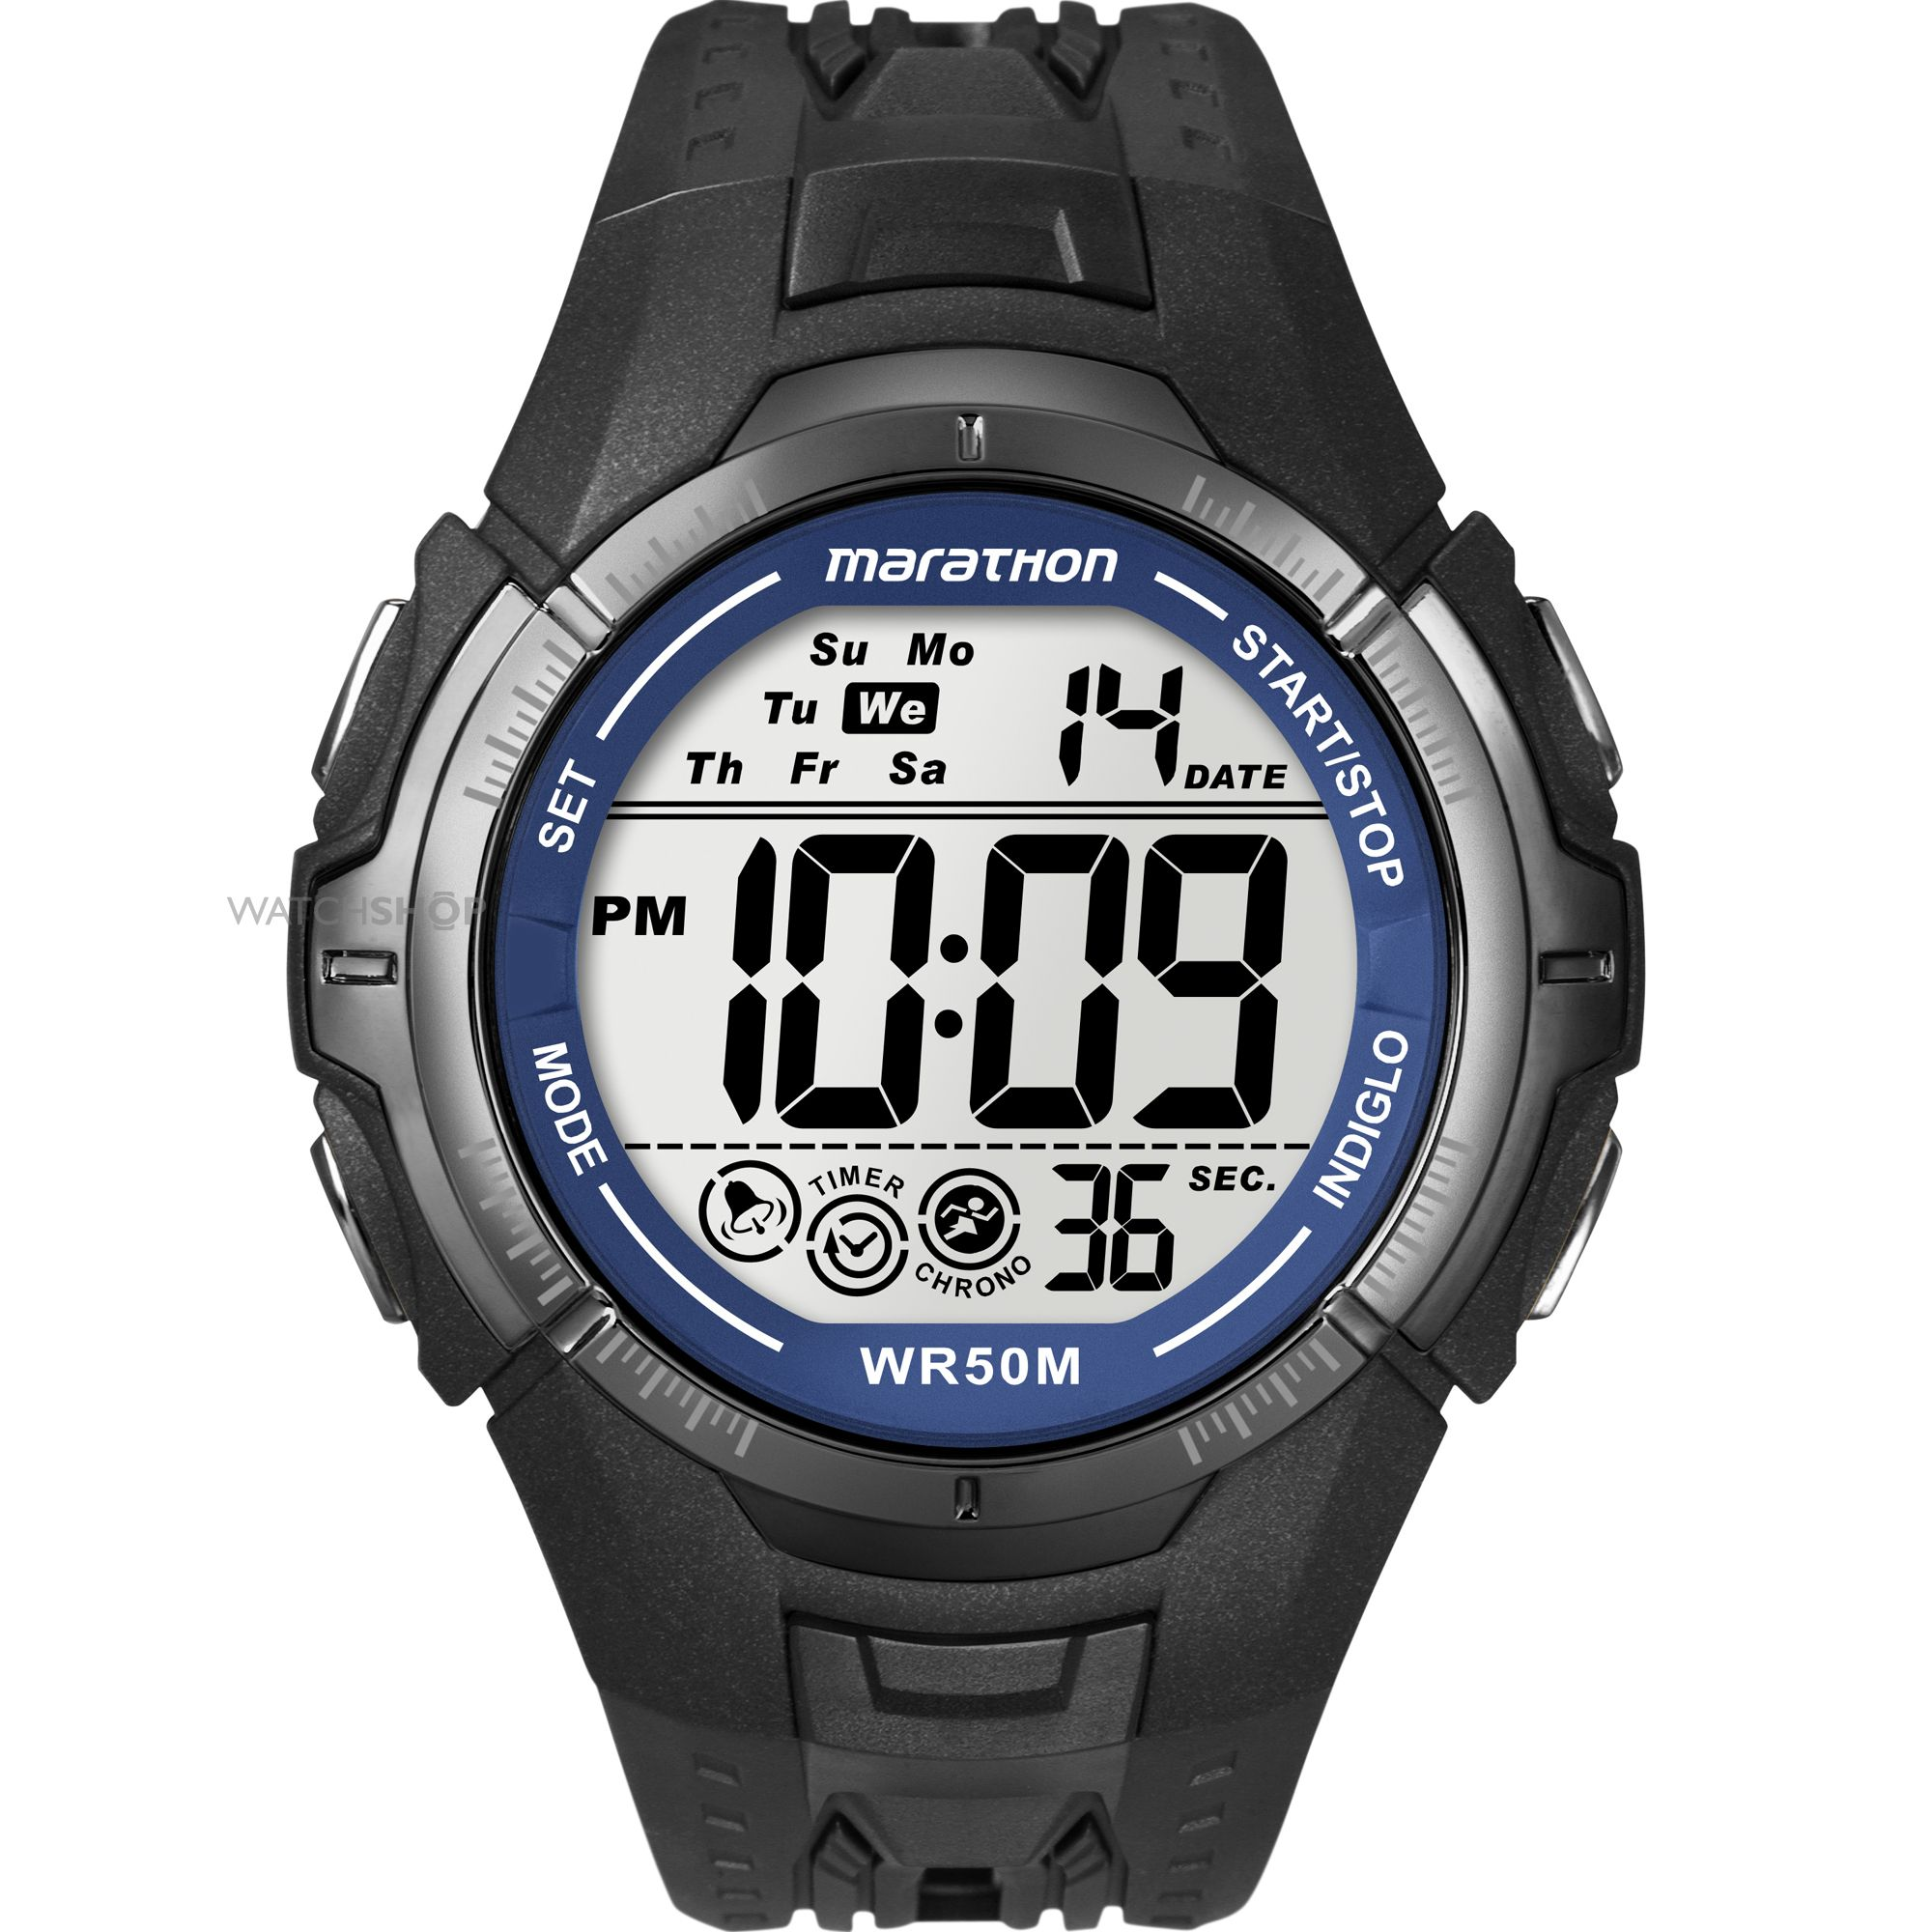 Digital watches 2015 humble watches for Watches digital